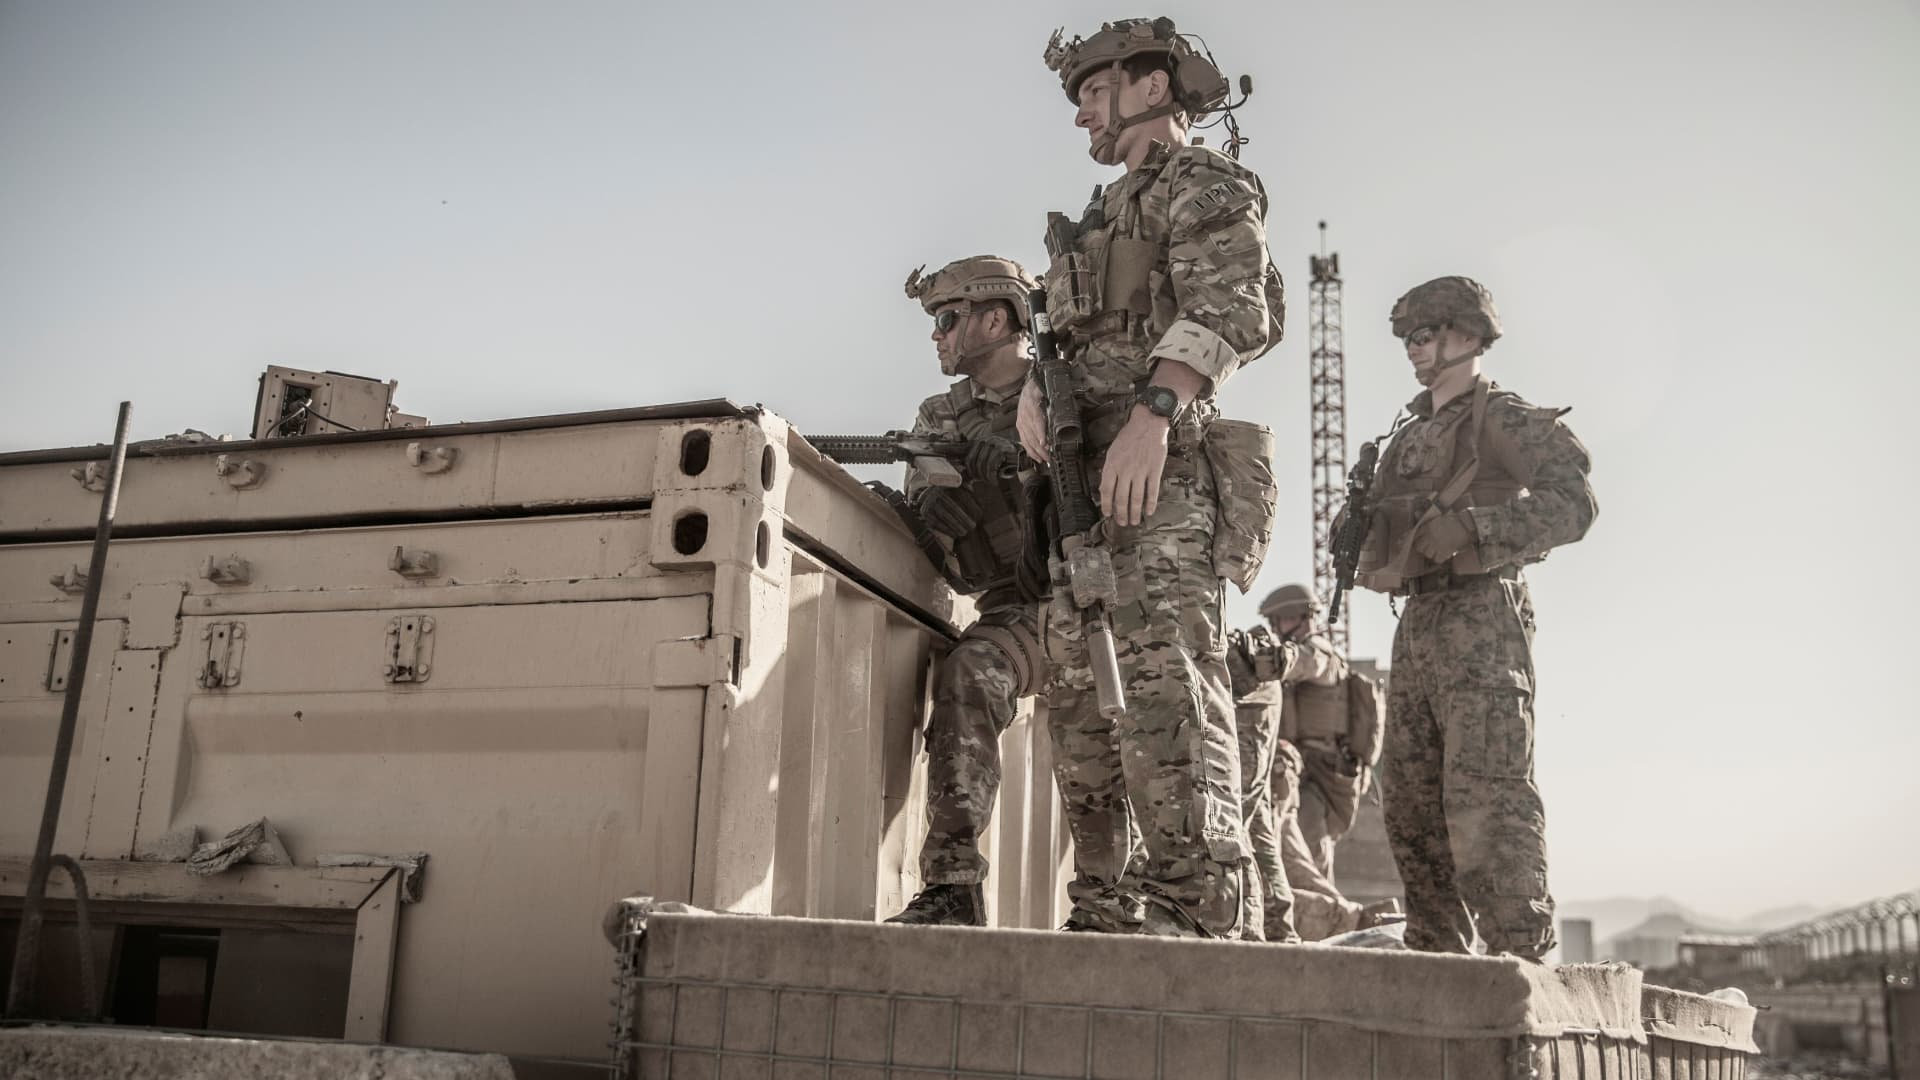 U.S. service members assist at an Evacuation Control Check Point (ECC) during an evacuation at Hamid Karzai International Airport, Kabul, Afghanistan, August 26, 2021.